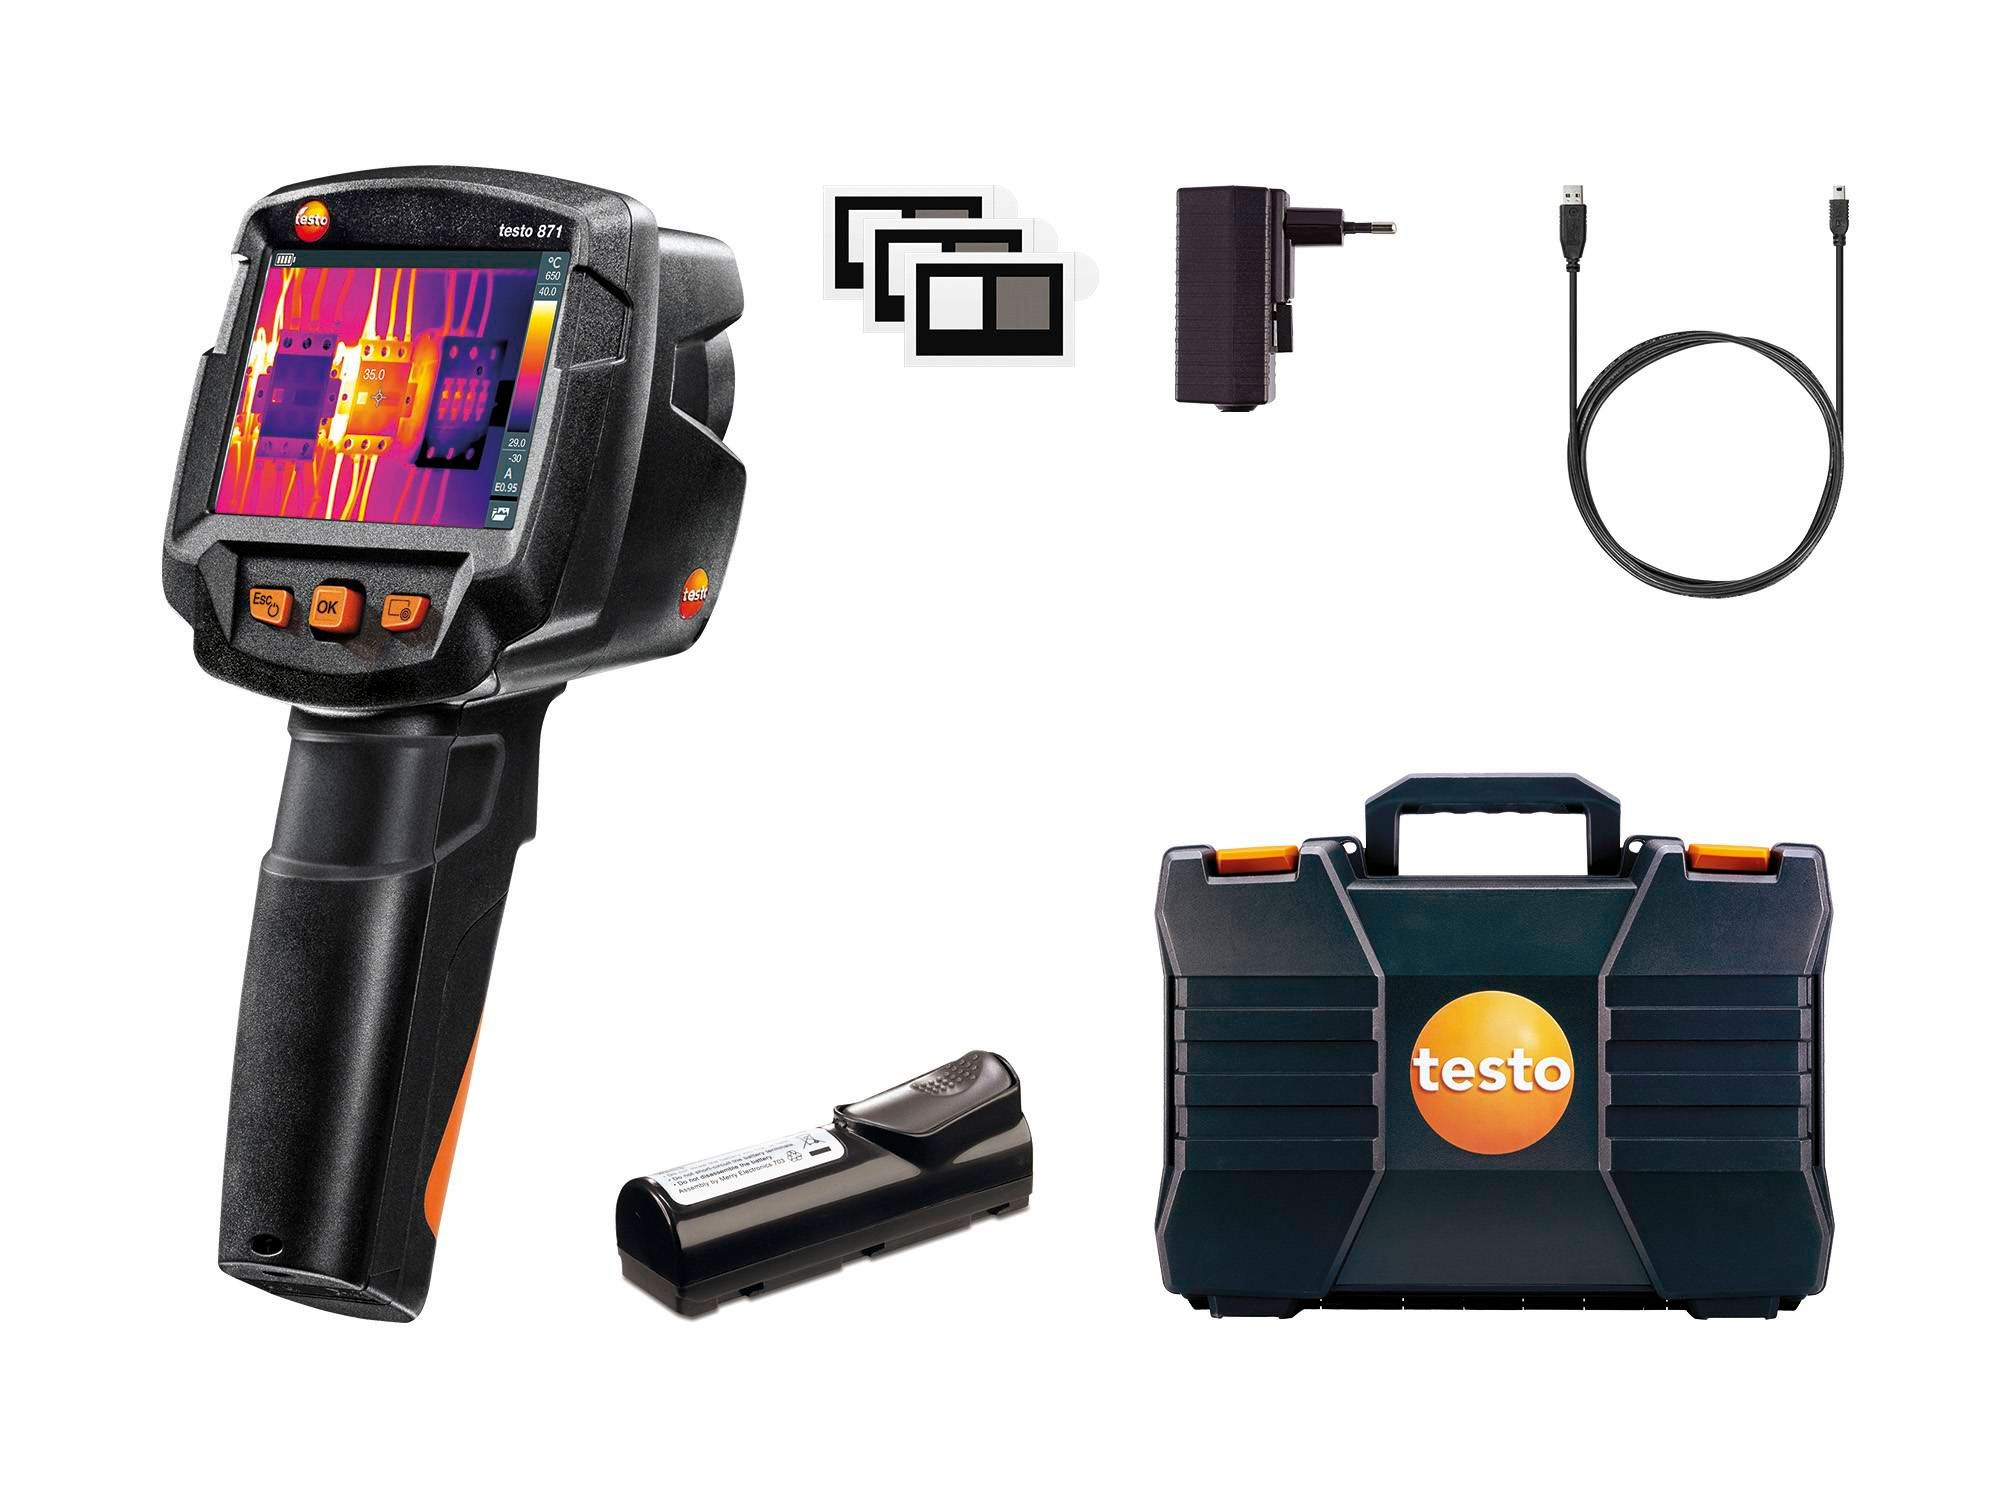 testo 871 - thermal imager